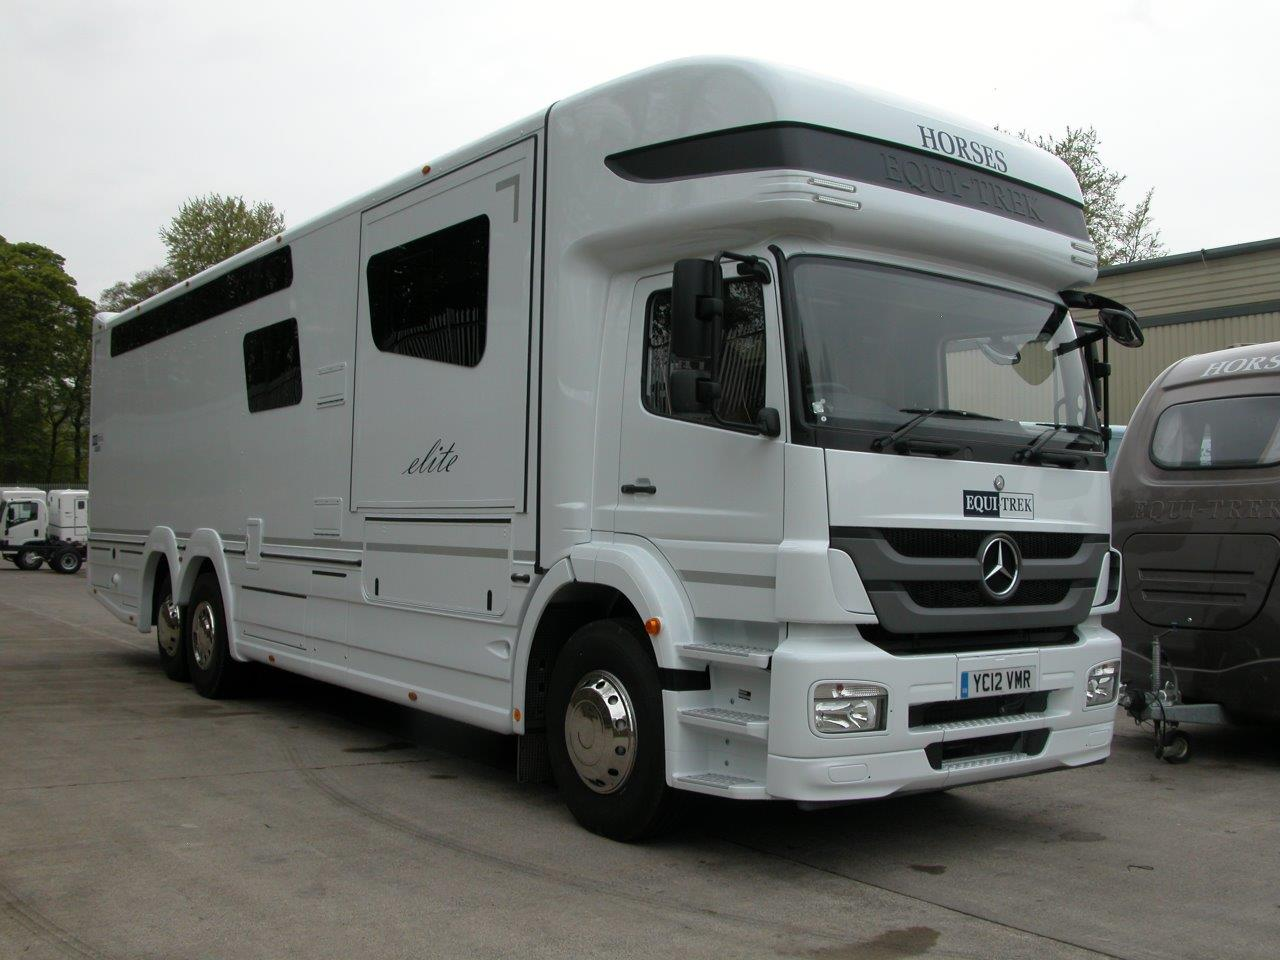 Pre-Owned Equi-Trek Enterprise Elite 26000kg